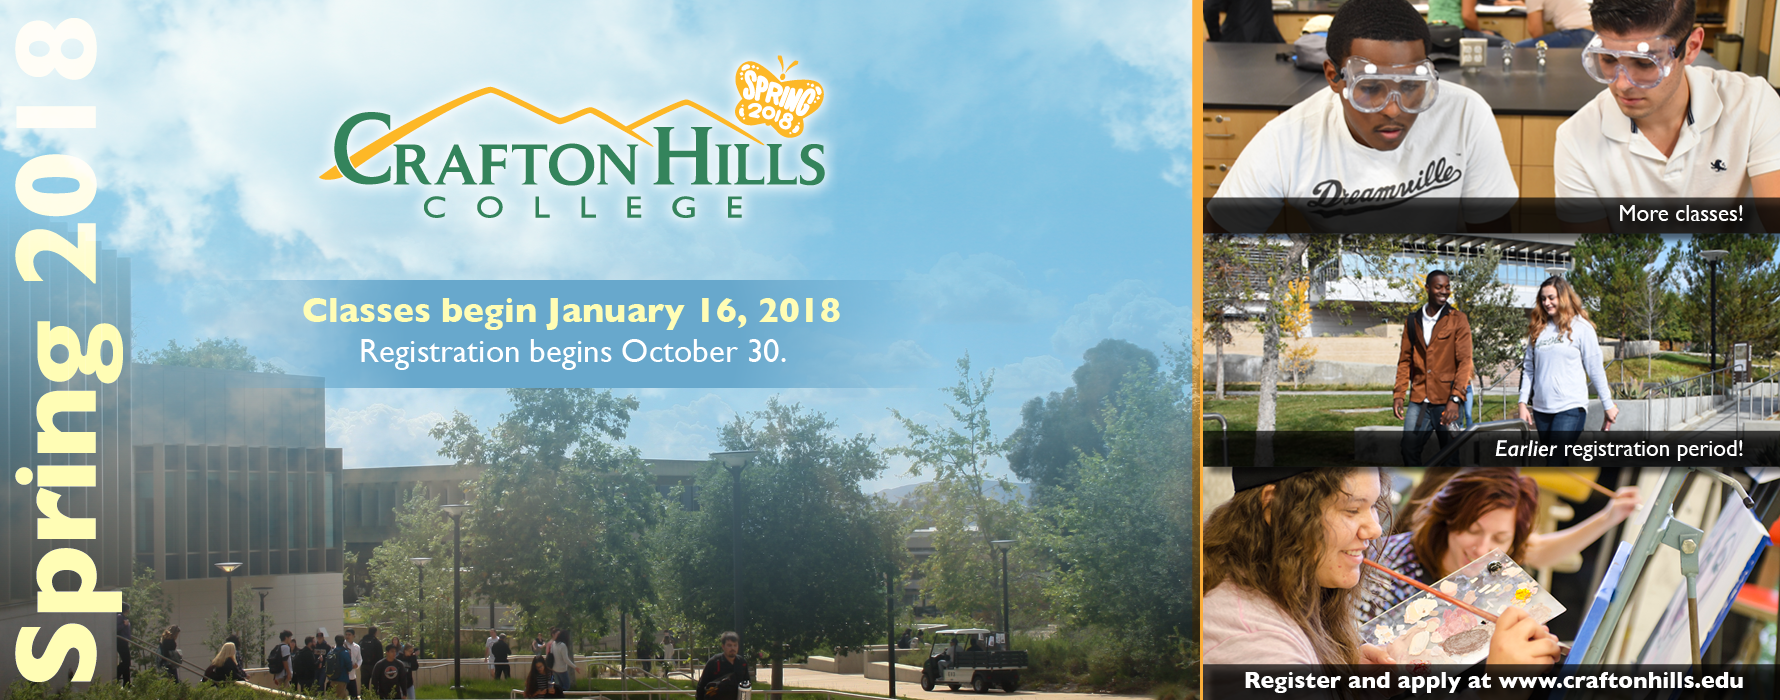 Crafton Hills College Spring 2018.Classes begin January 16, 2018. Priority Registration begins October 30. Open Registration begins November 17. More classes. Earlier registration period. Register and apply at www.craftonhills.edu